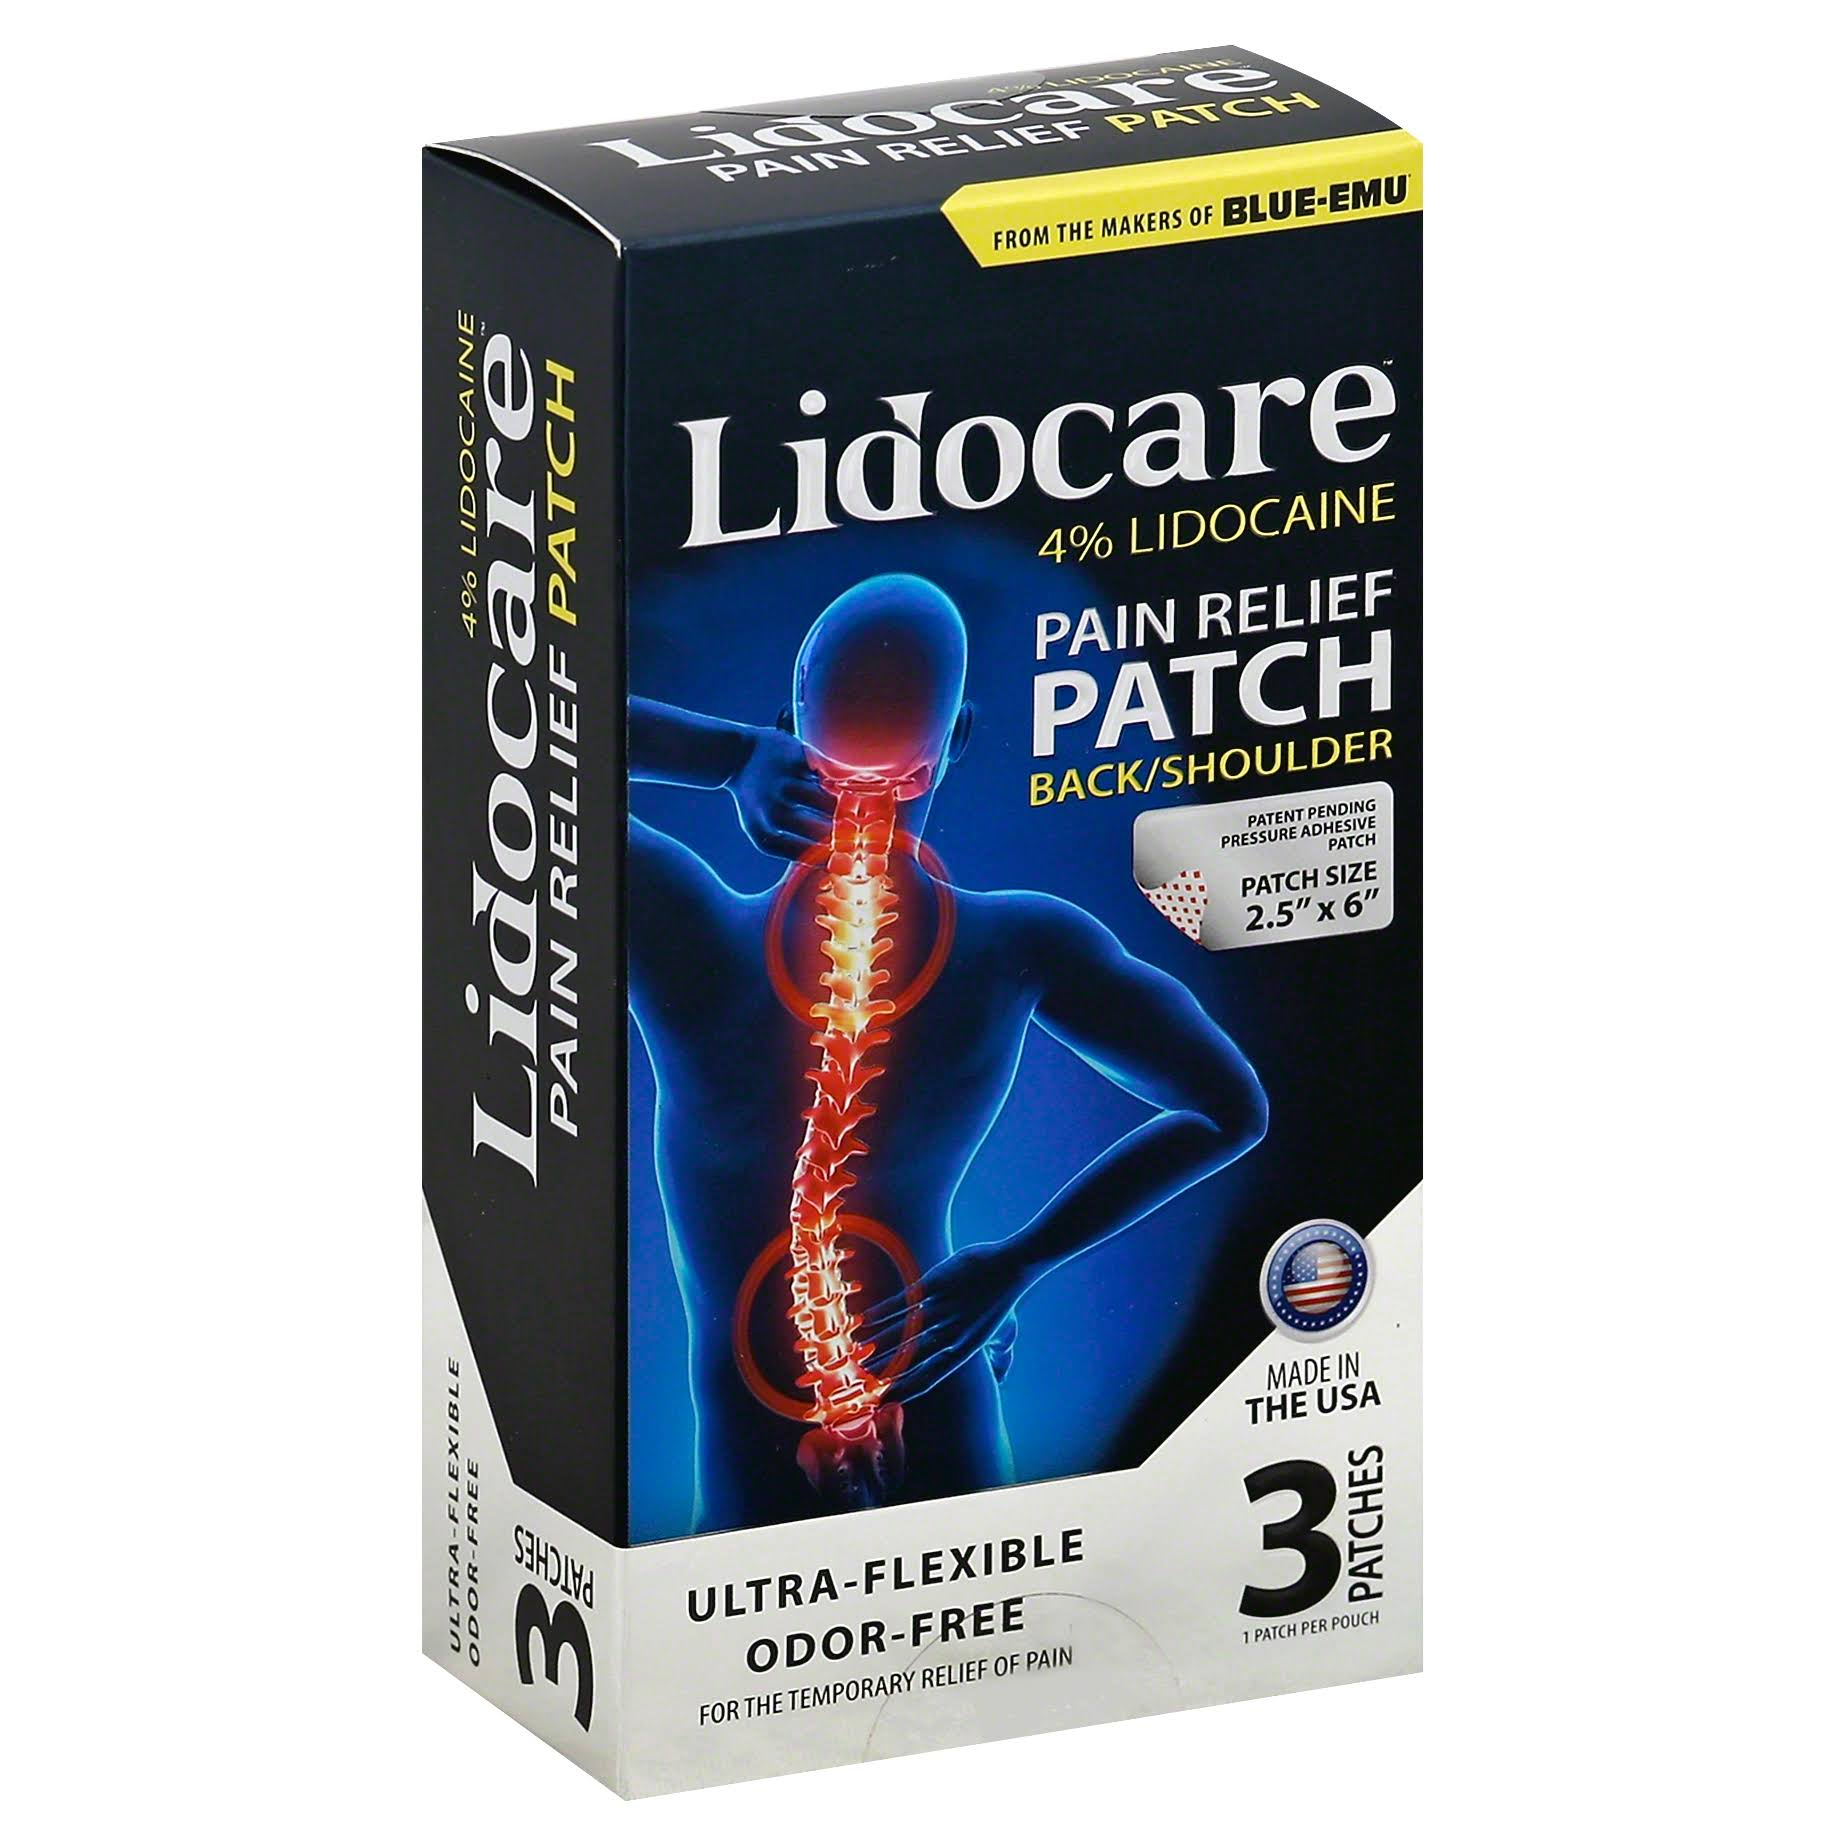 Blue-Emu Lidocare Pain Relief Patch - 3 Patches